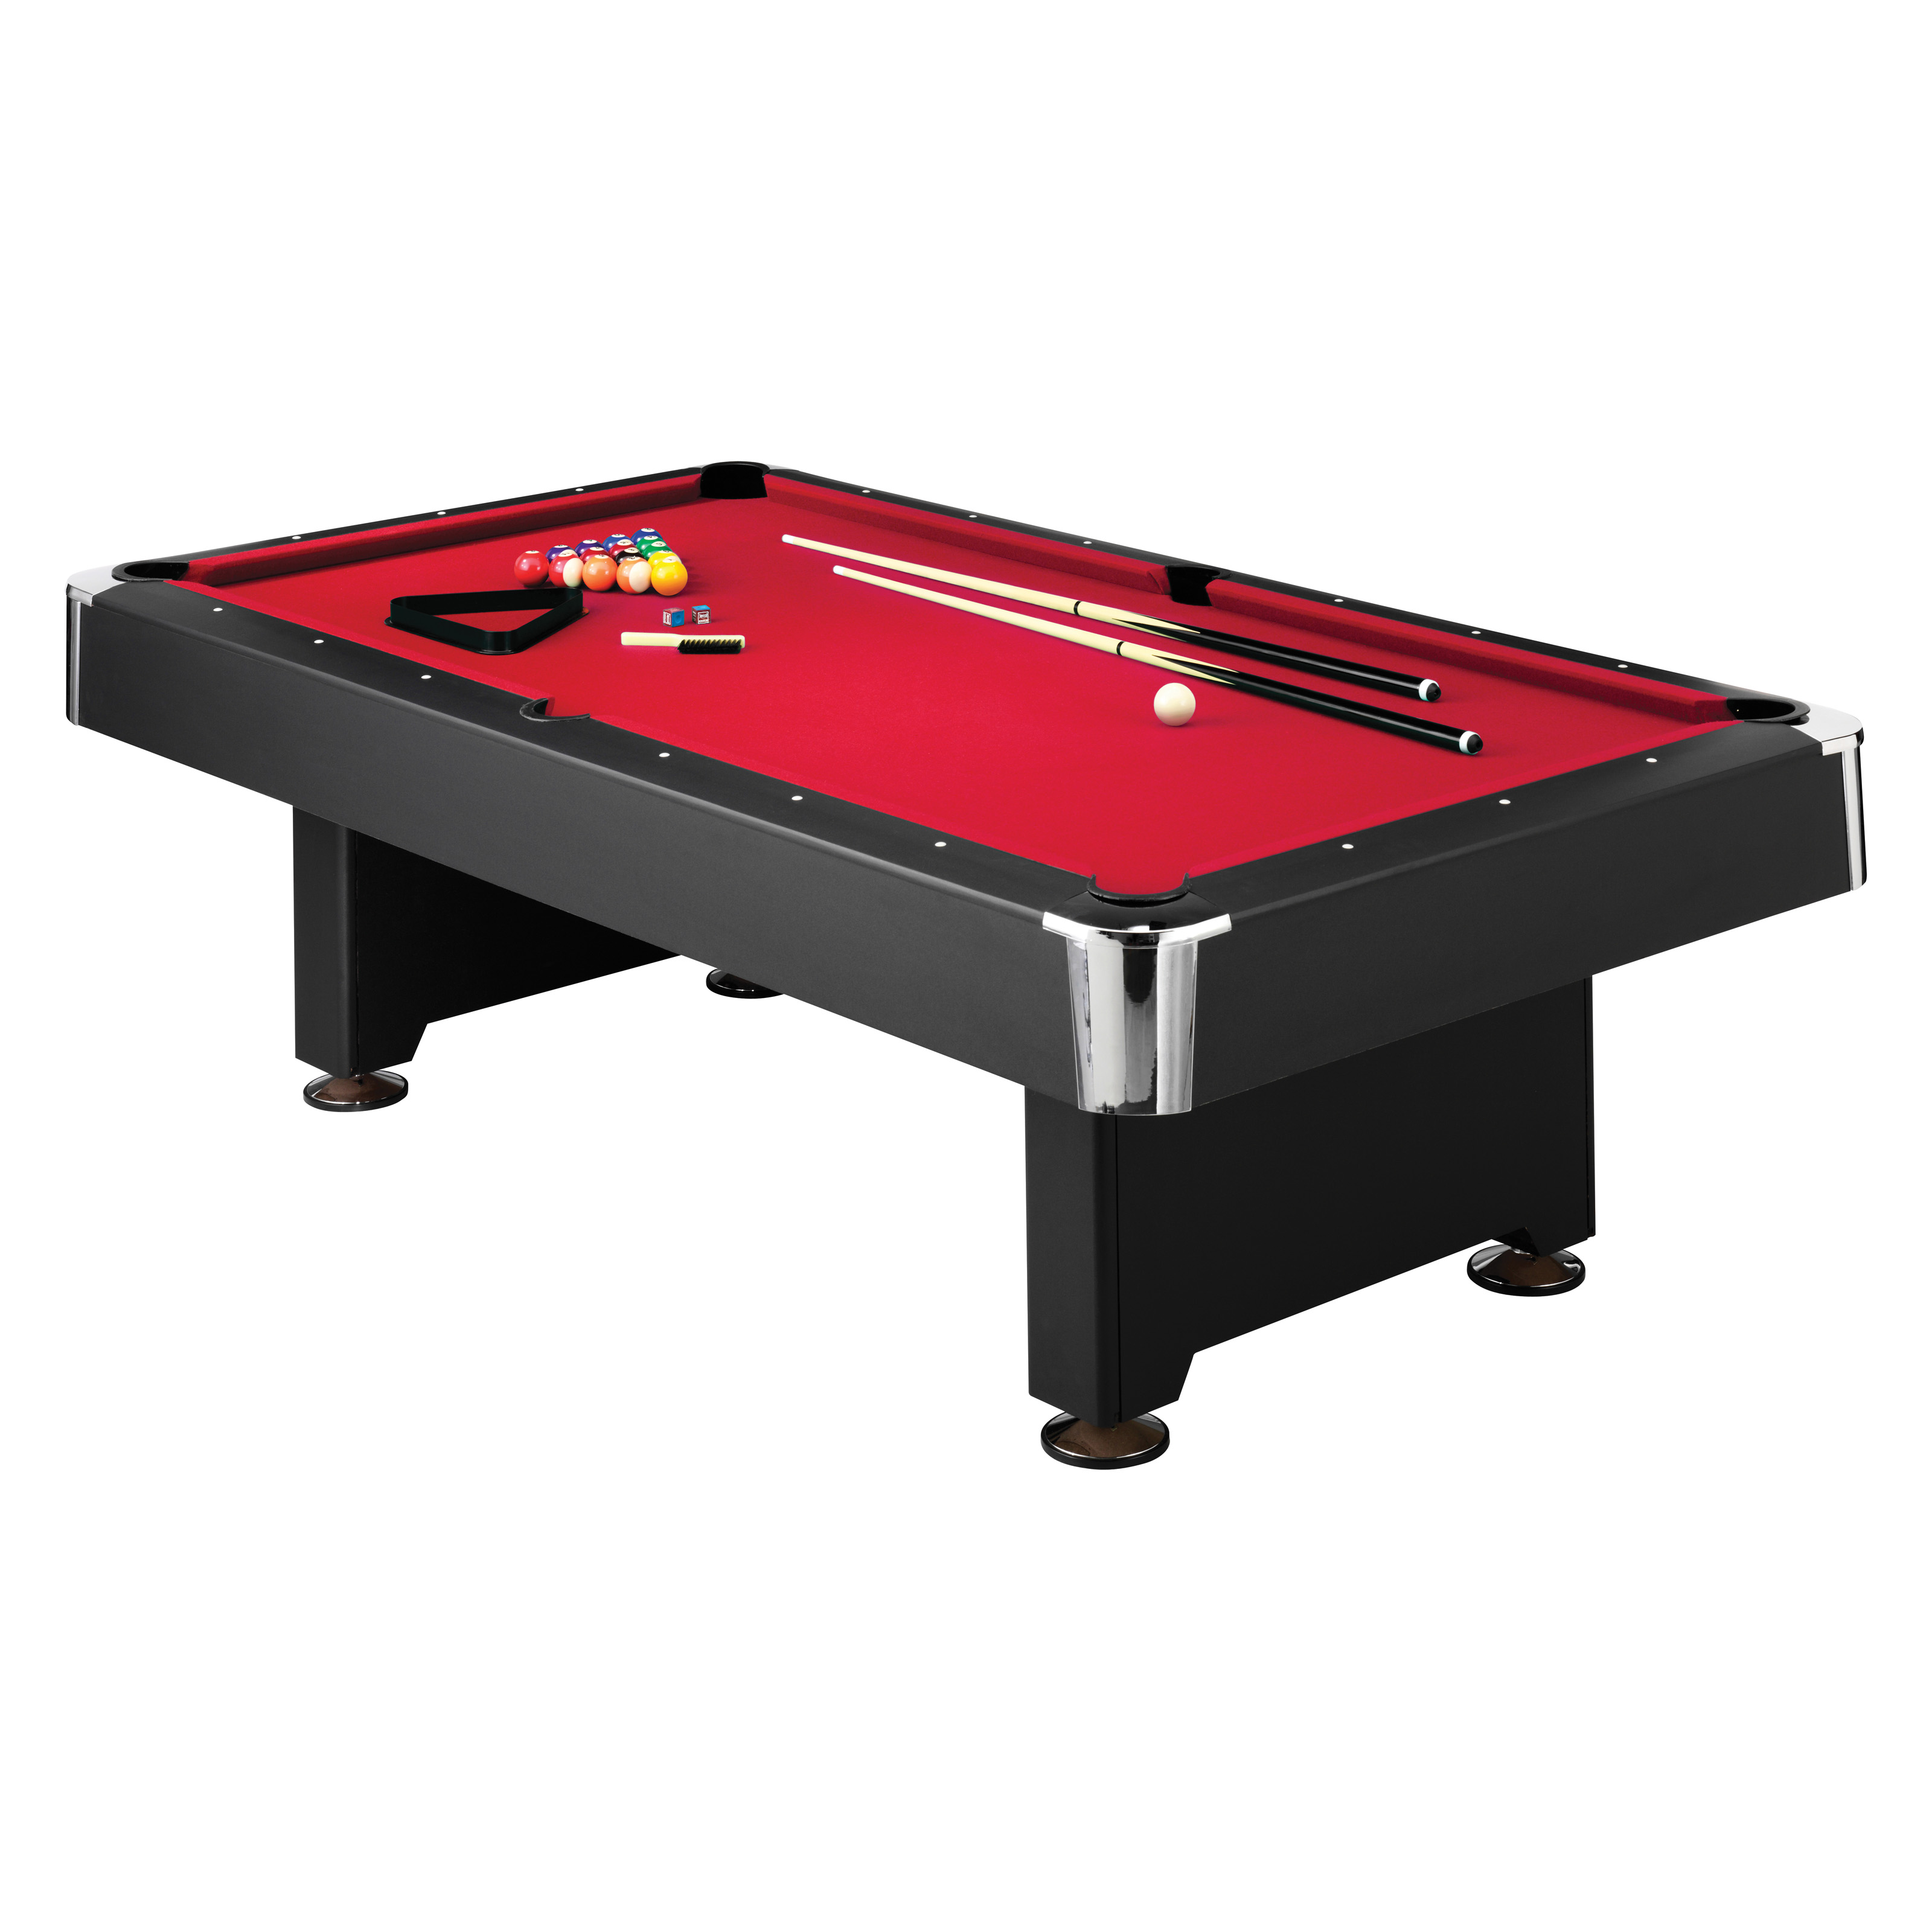 E Saver Billiard Table Hayneedle